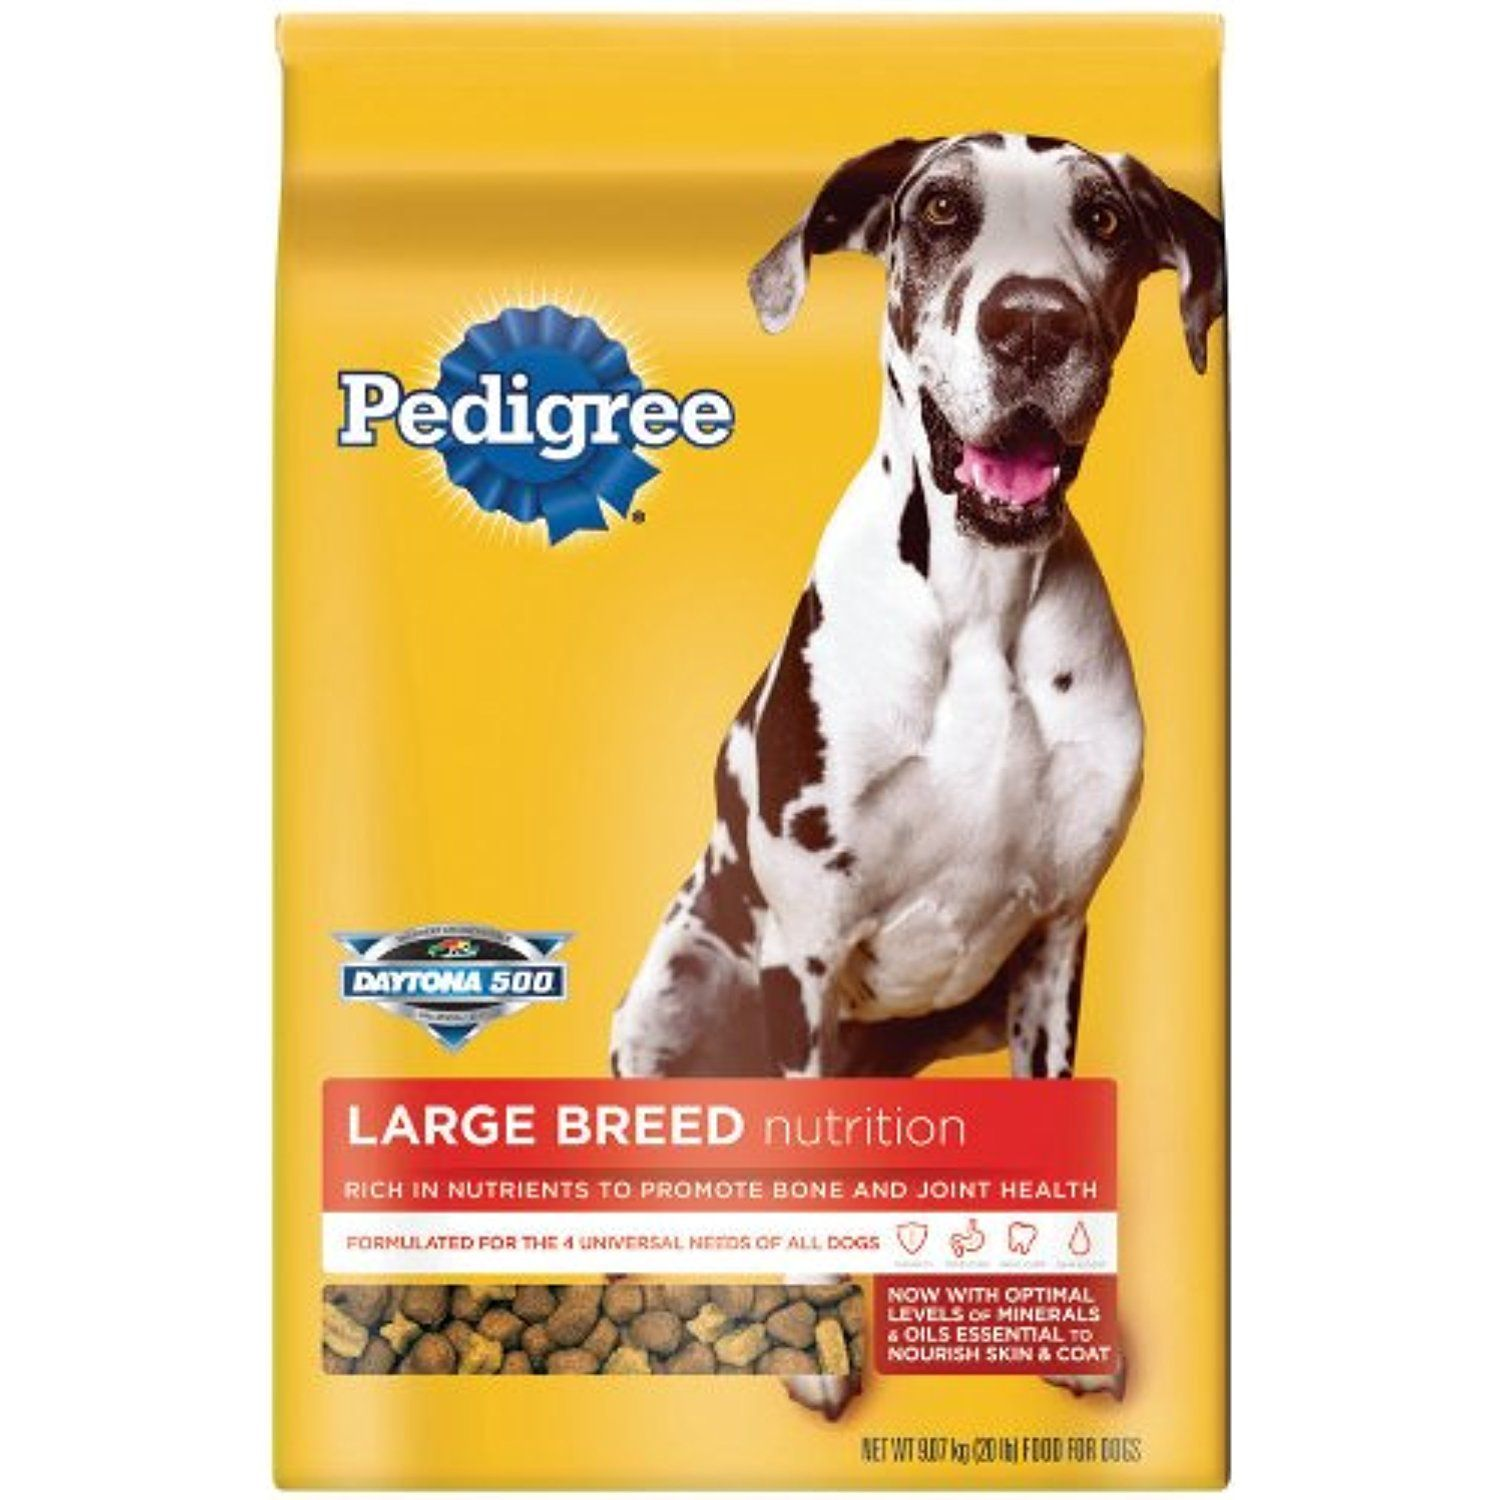 Pedigree 20 lb large breed food for adult dogs if you